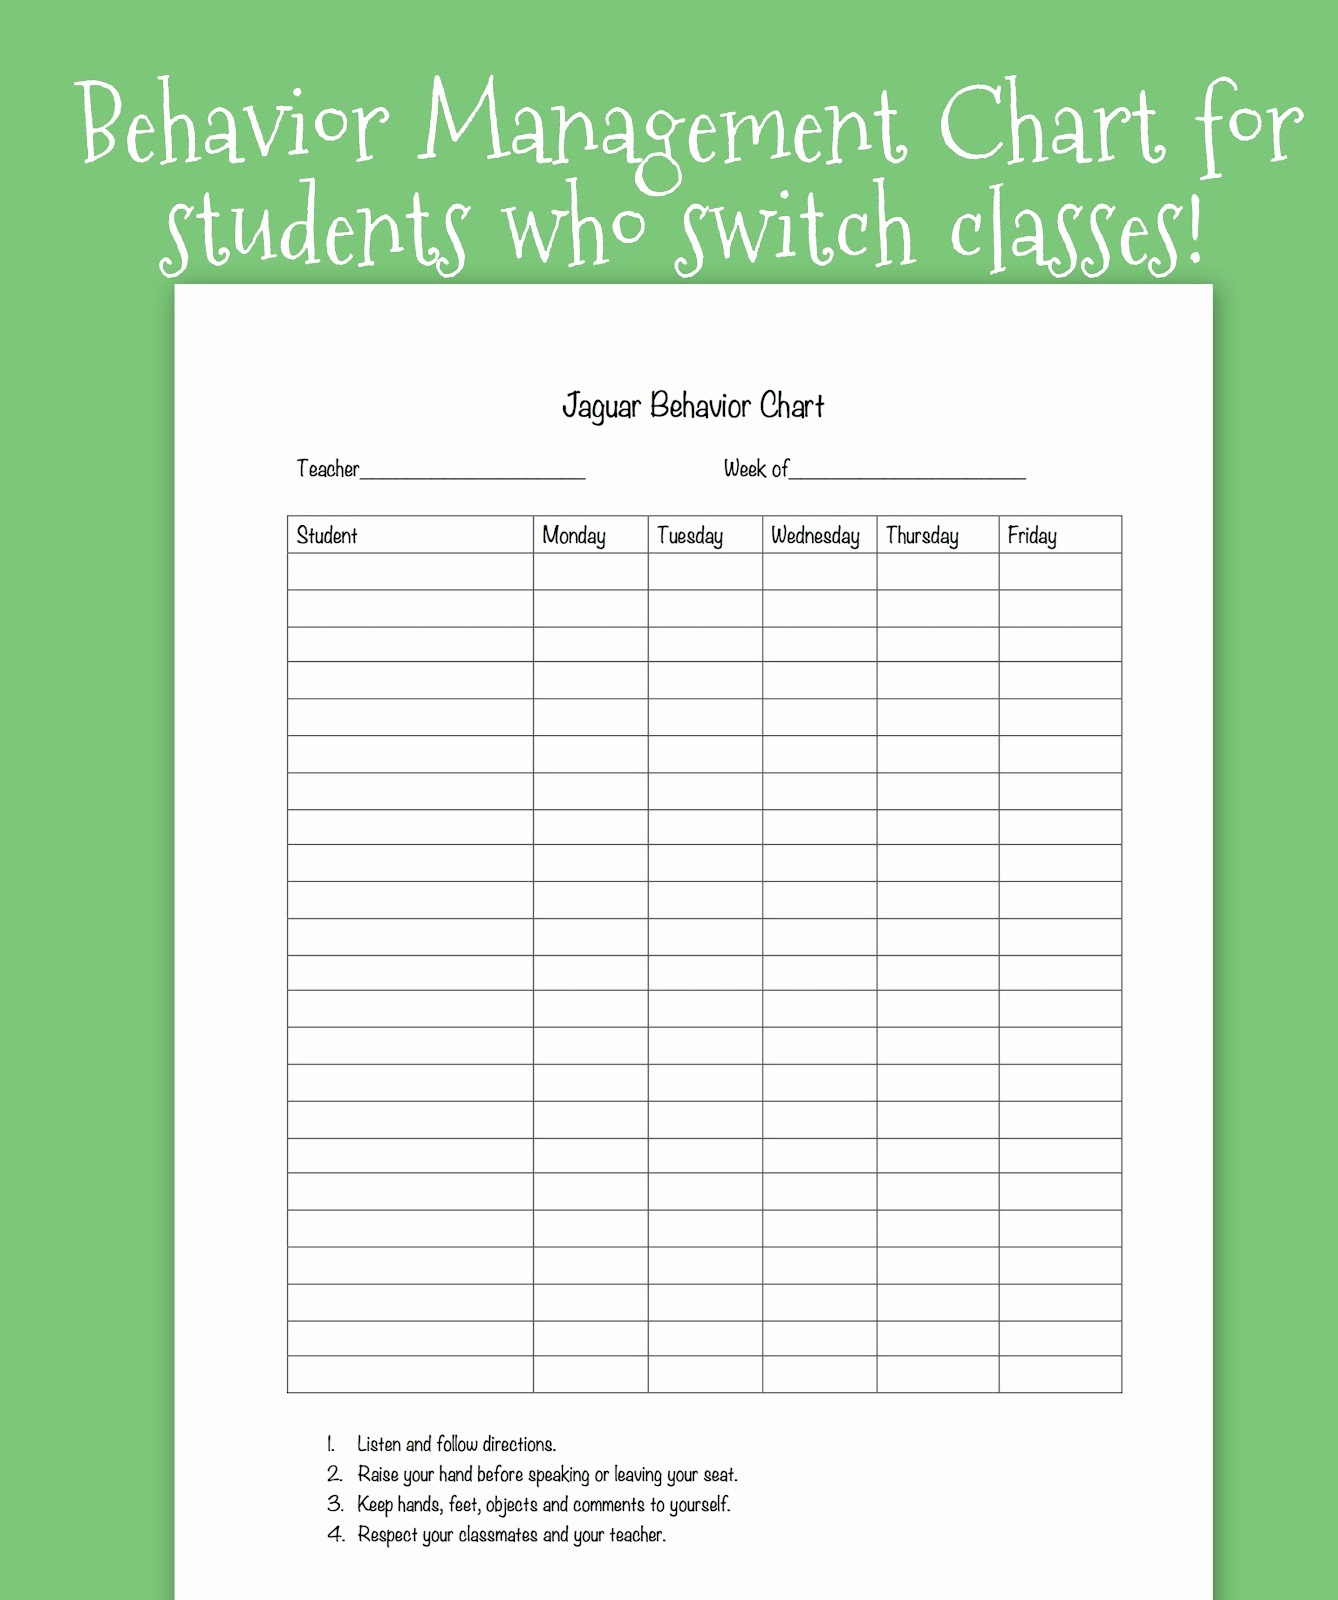 Behavior Chart Template High School Free Printable Behavior Charts - Free Printable Behavior Charts